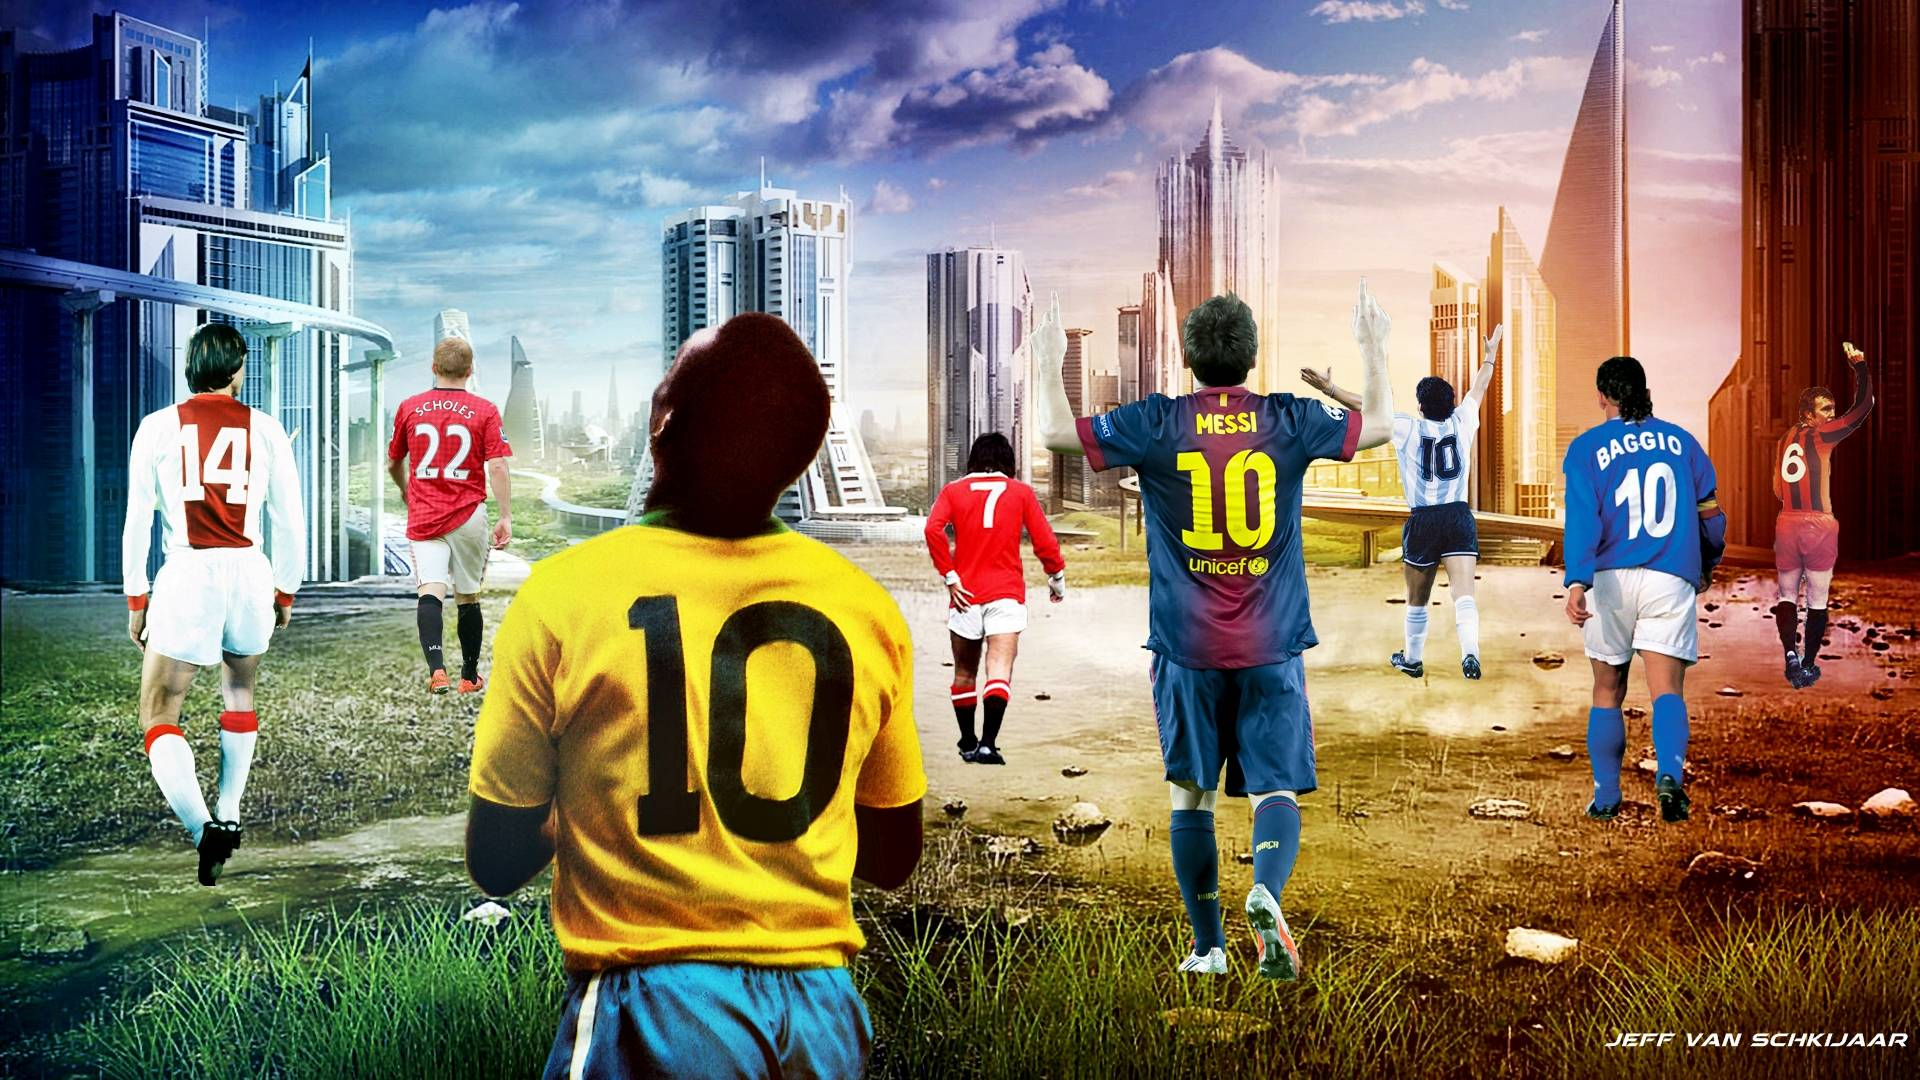 Sports Themes Wallpapers: Best Sports Wallpapers